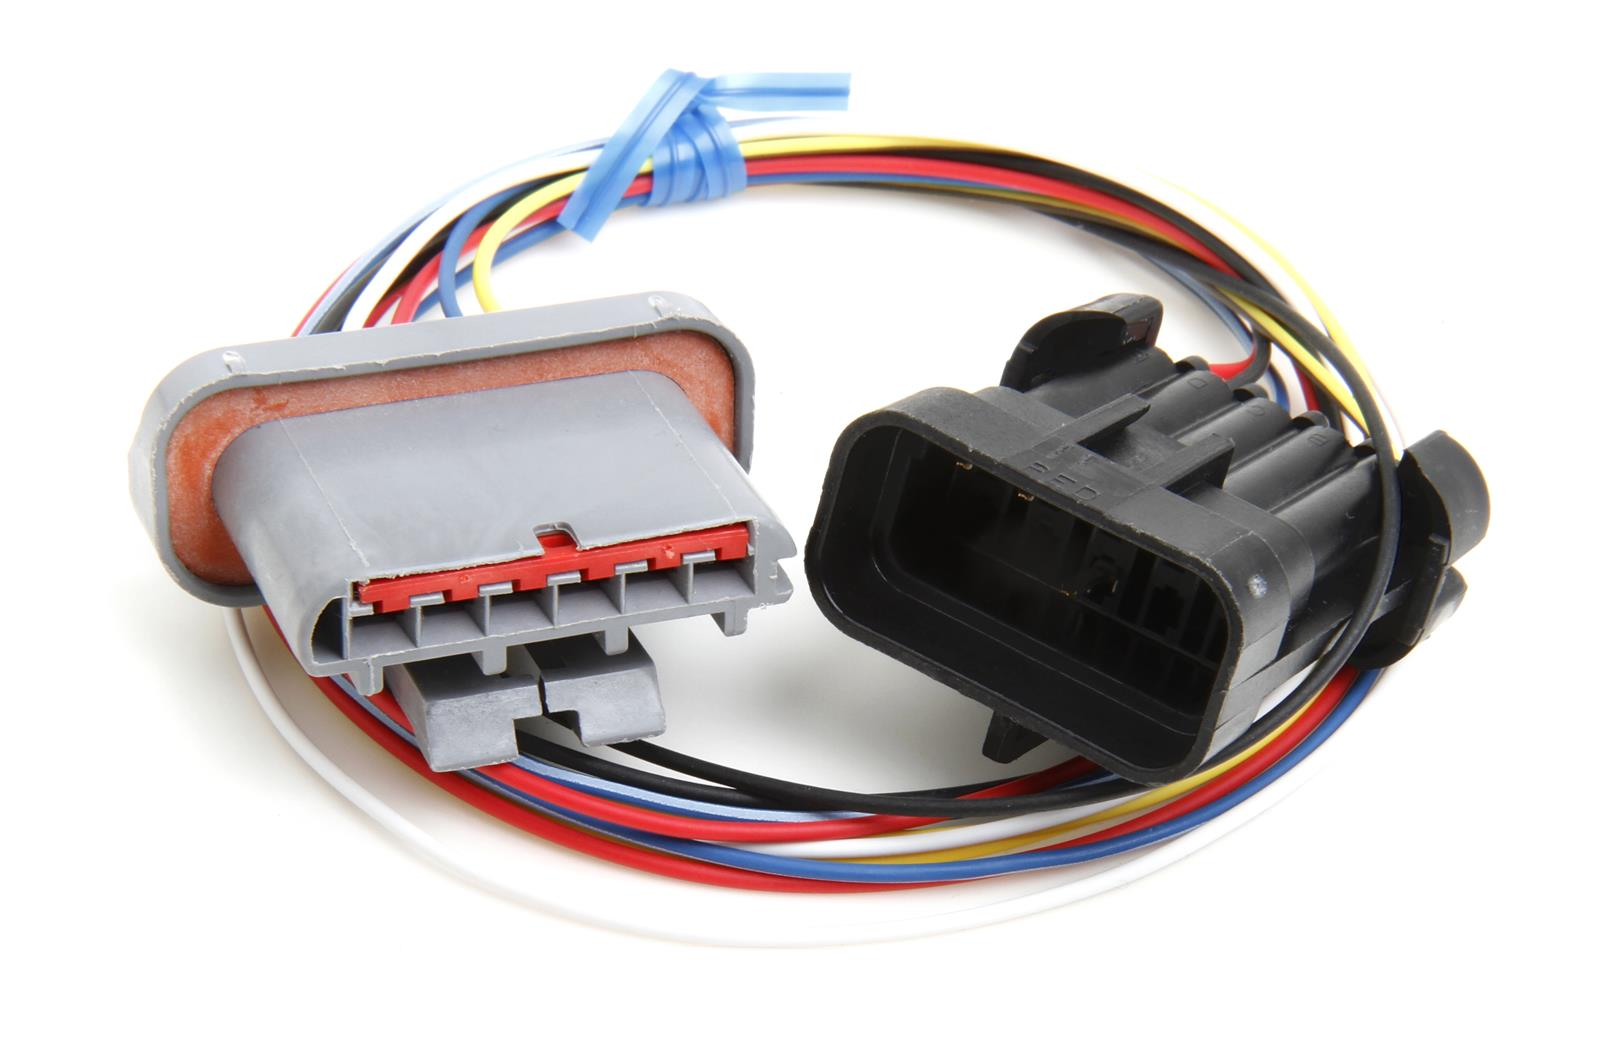 hight resolution of holley efi systems wiring harnesses 558 305 free shipping on holley terminator wiring harness holley wiring harness